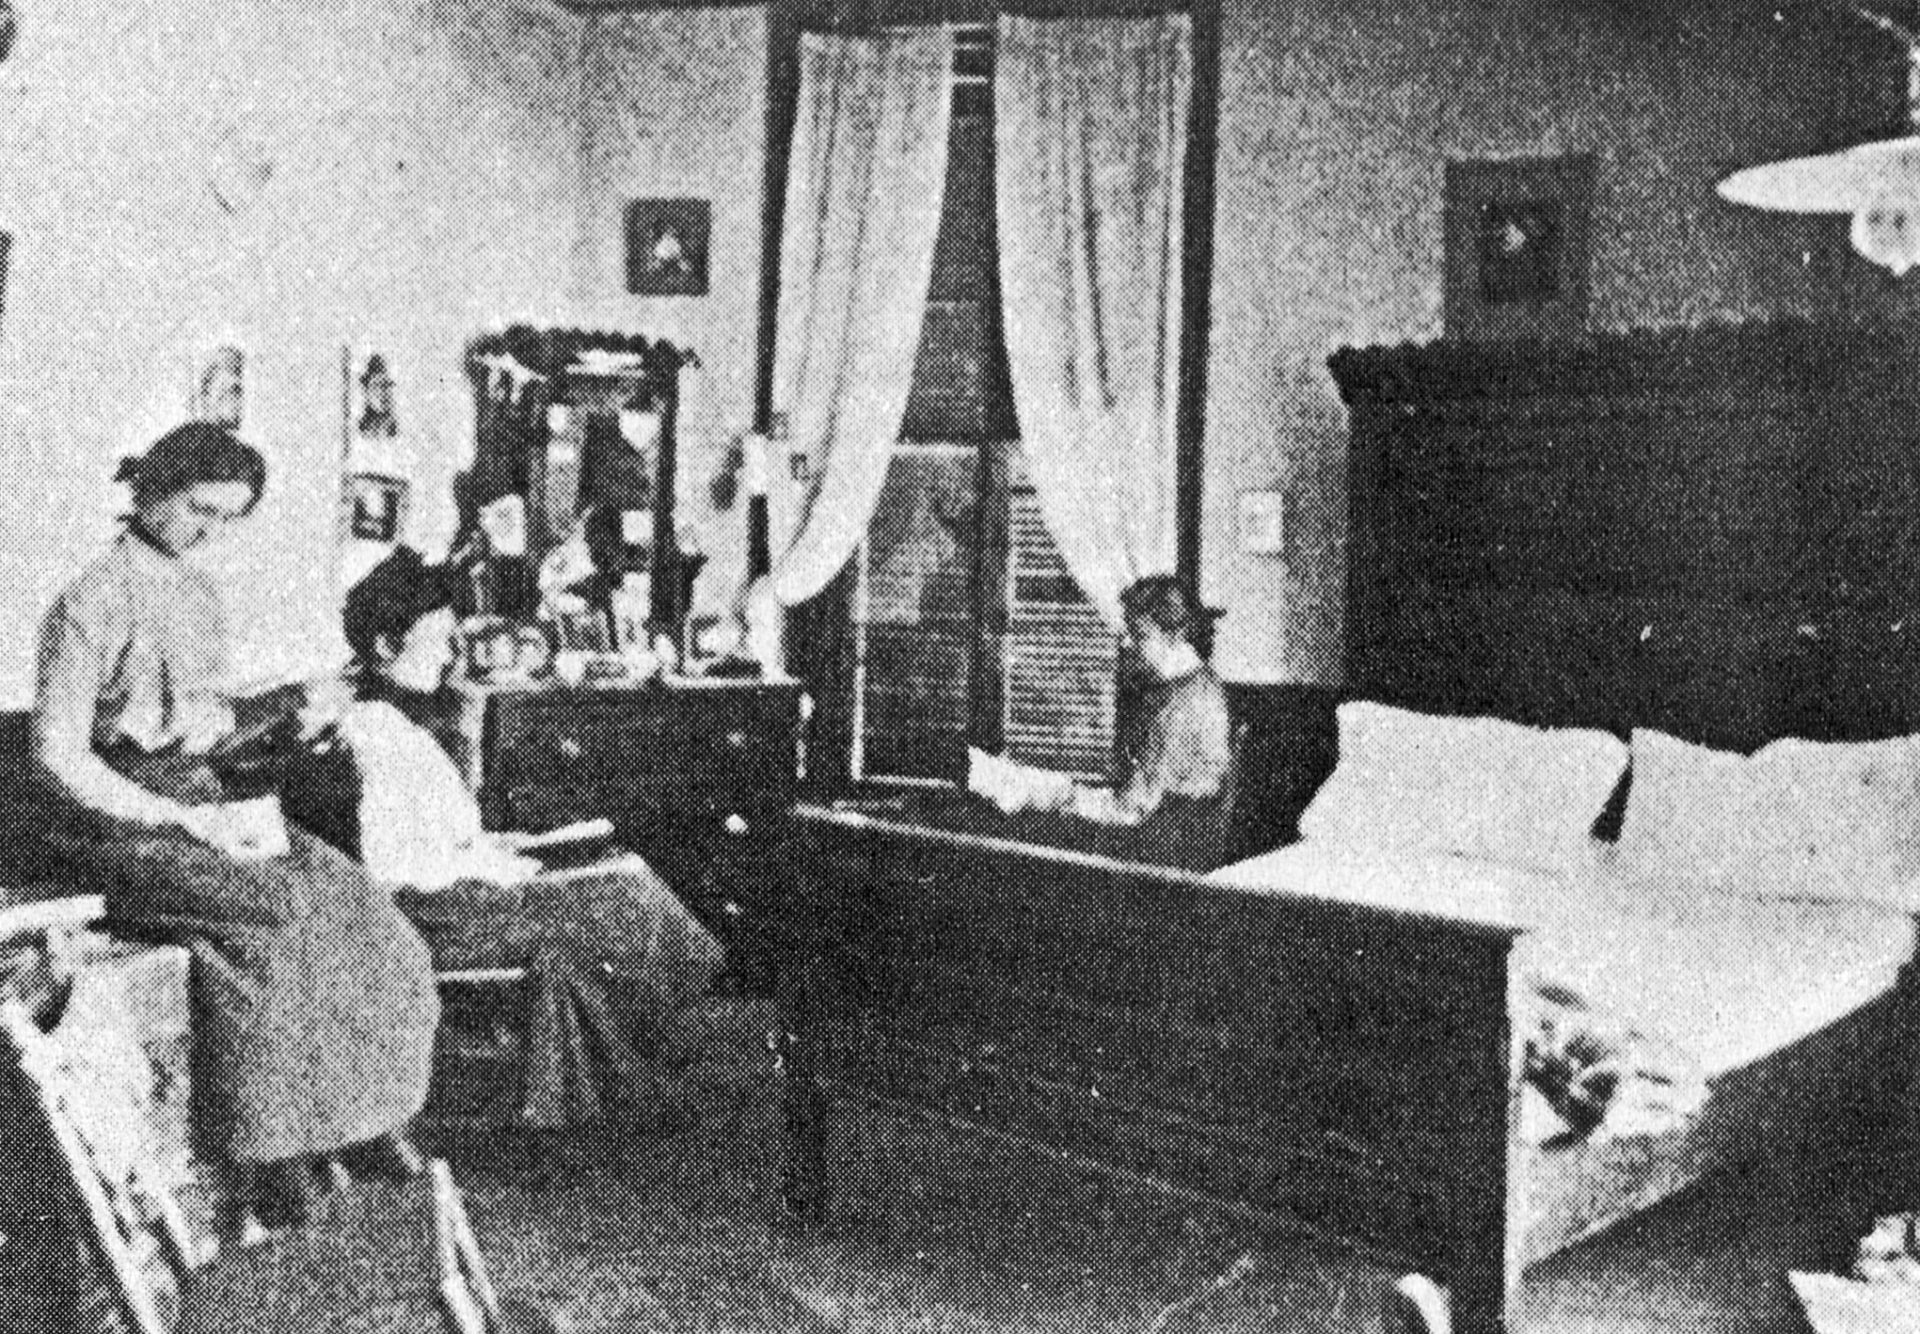 Kappa Delta Longwood College Dorm Room early 1900s